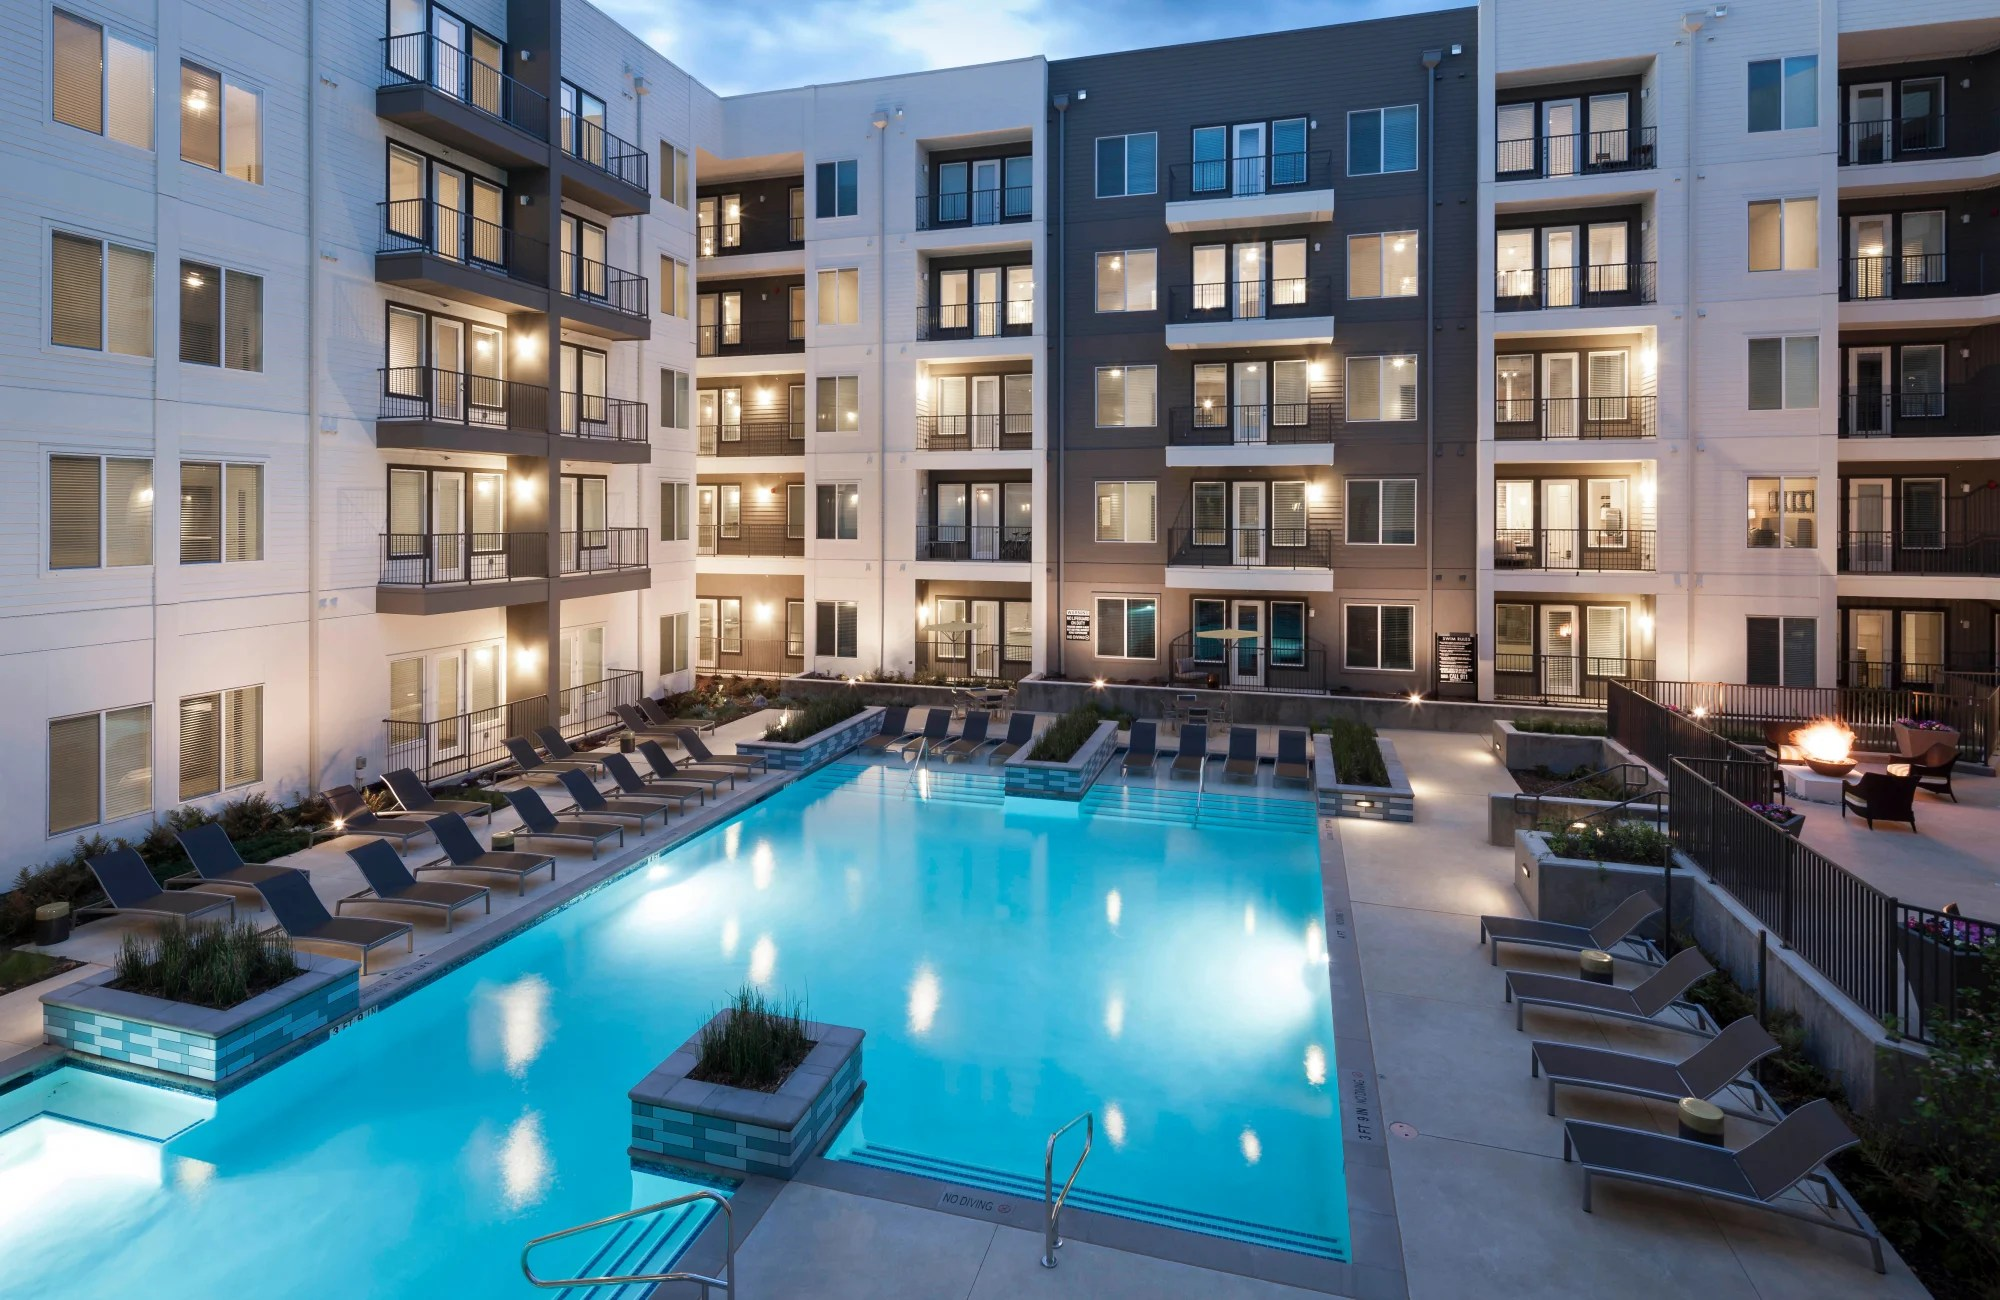 Studio Apartments Dallas